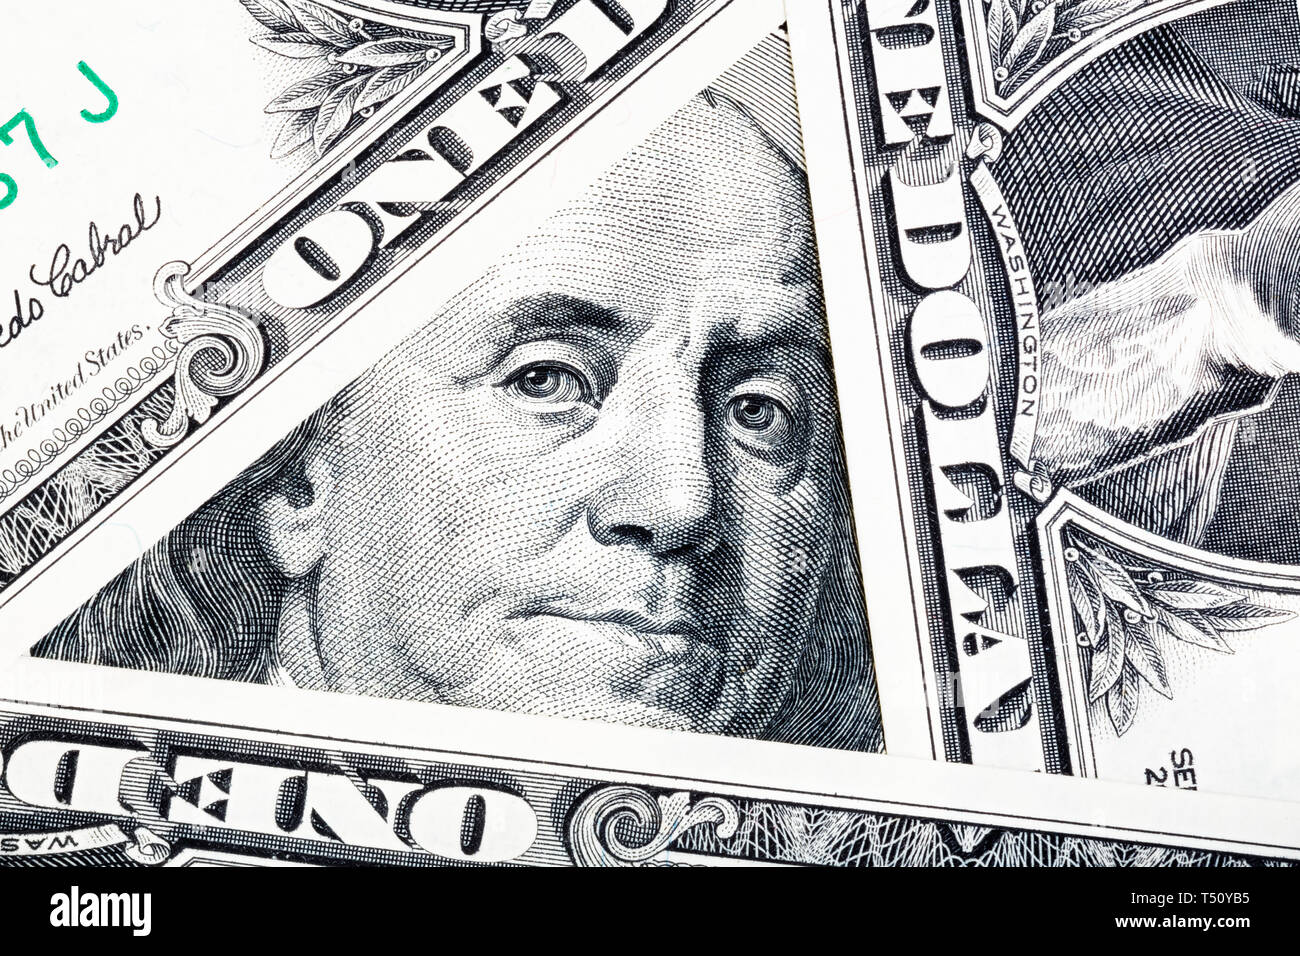 Benjamin Franklin on the one hundred dollar bill framed by other banknotes. - Stock Image